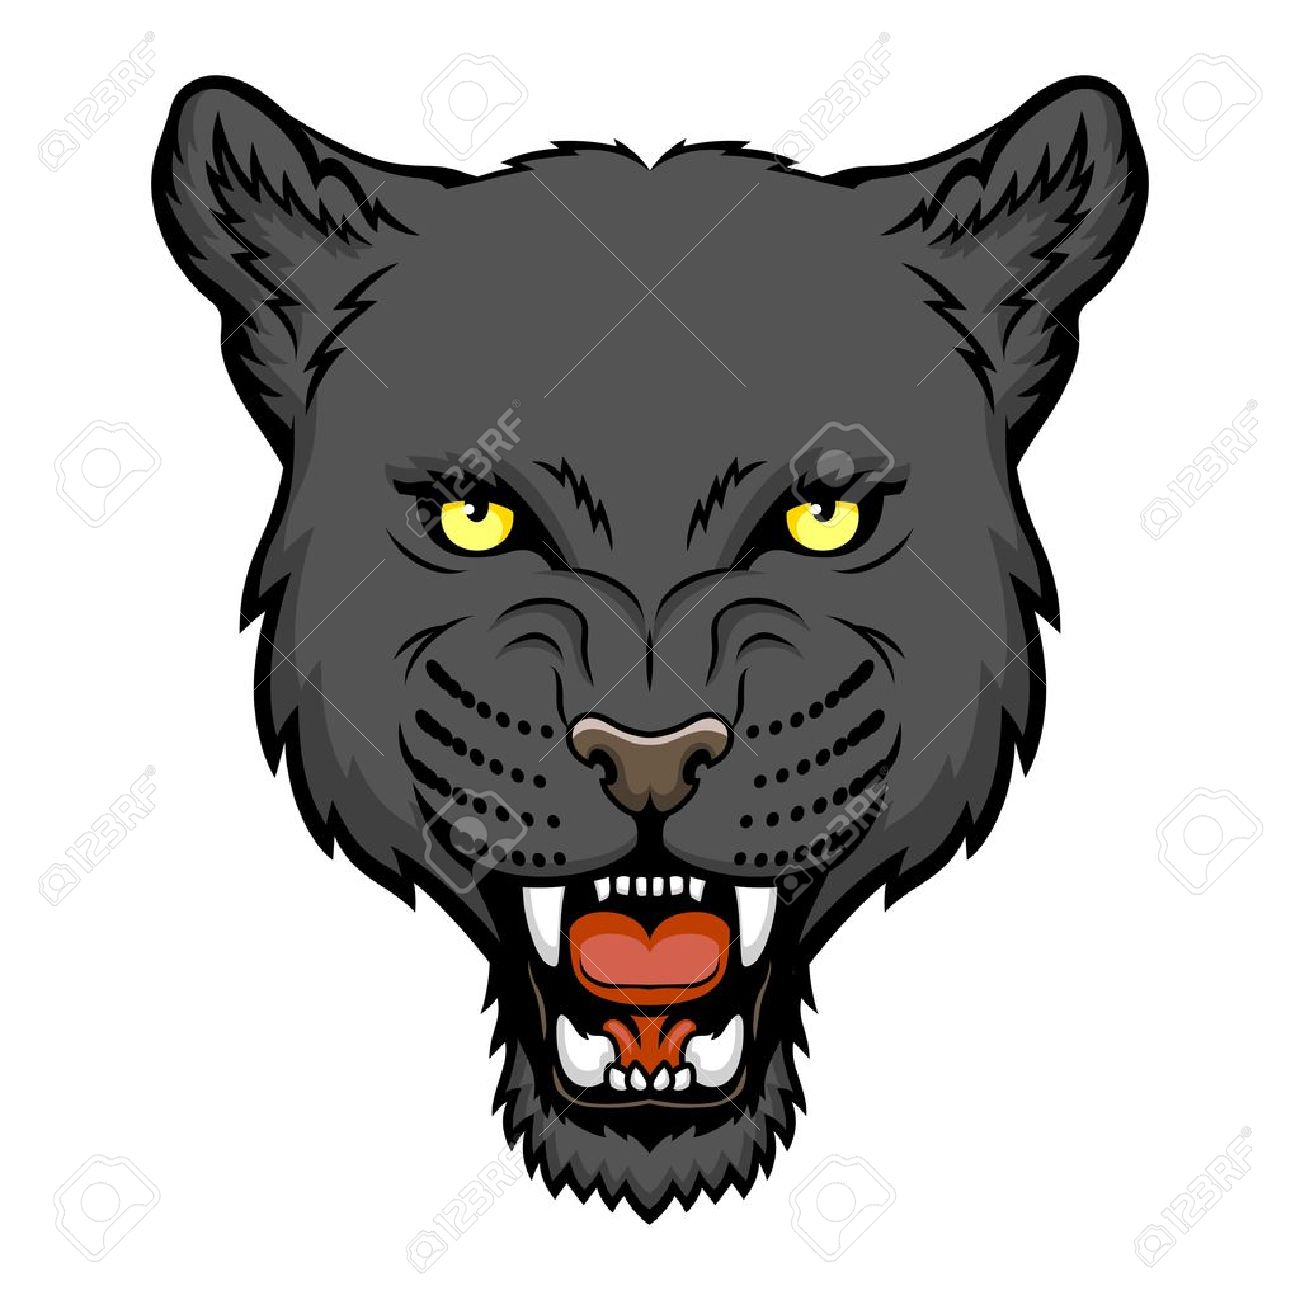 1300x1300 A Panther Head Logo This Is Illustration Ideal For A Mascot